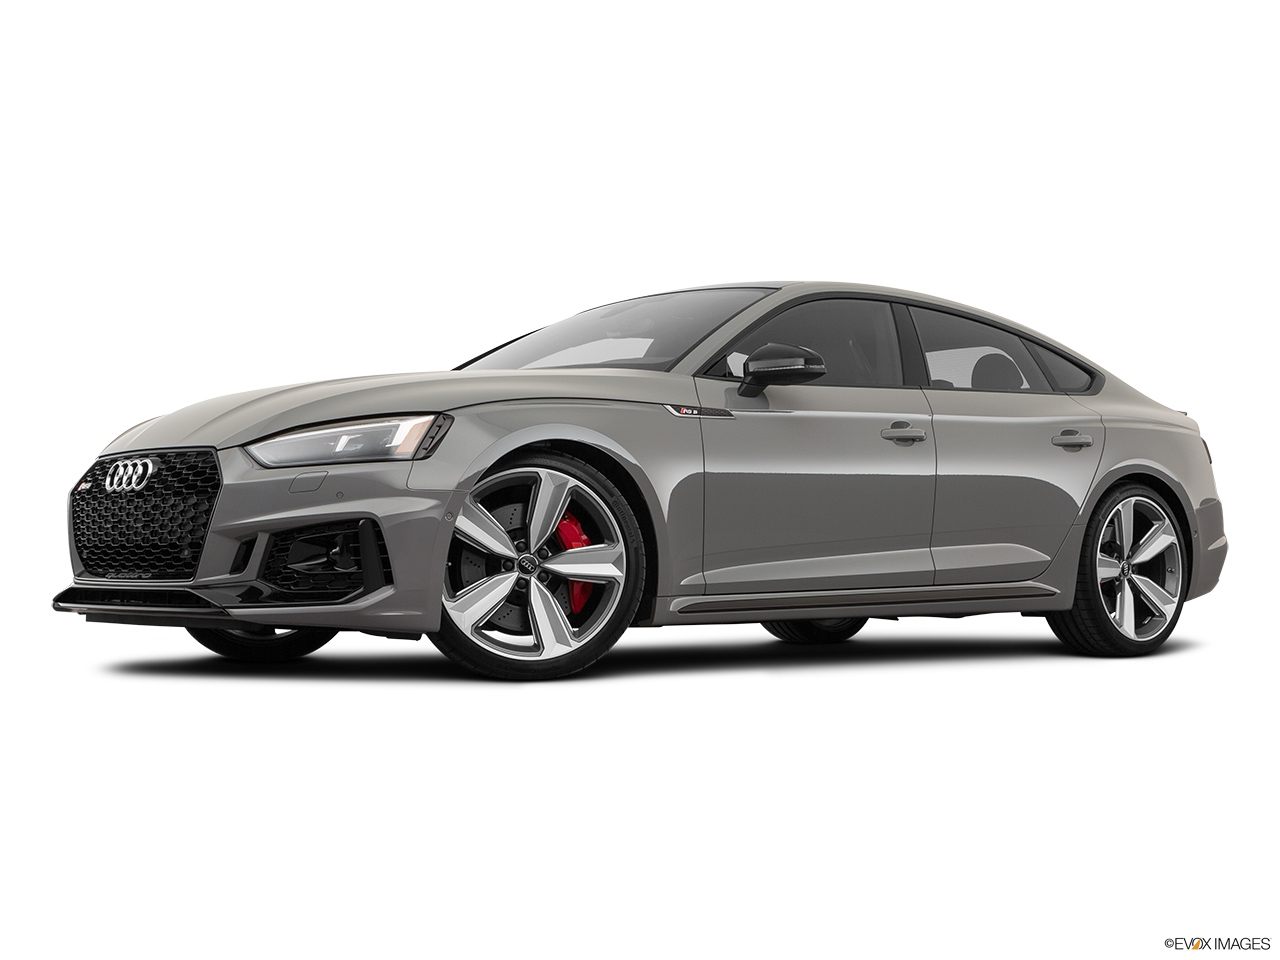 2019 Audi RS 5 Sportback 2.9 TFSI Low/wide front 5/8.